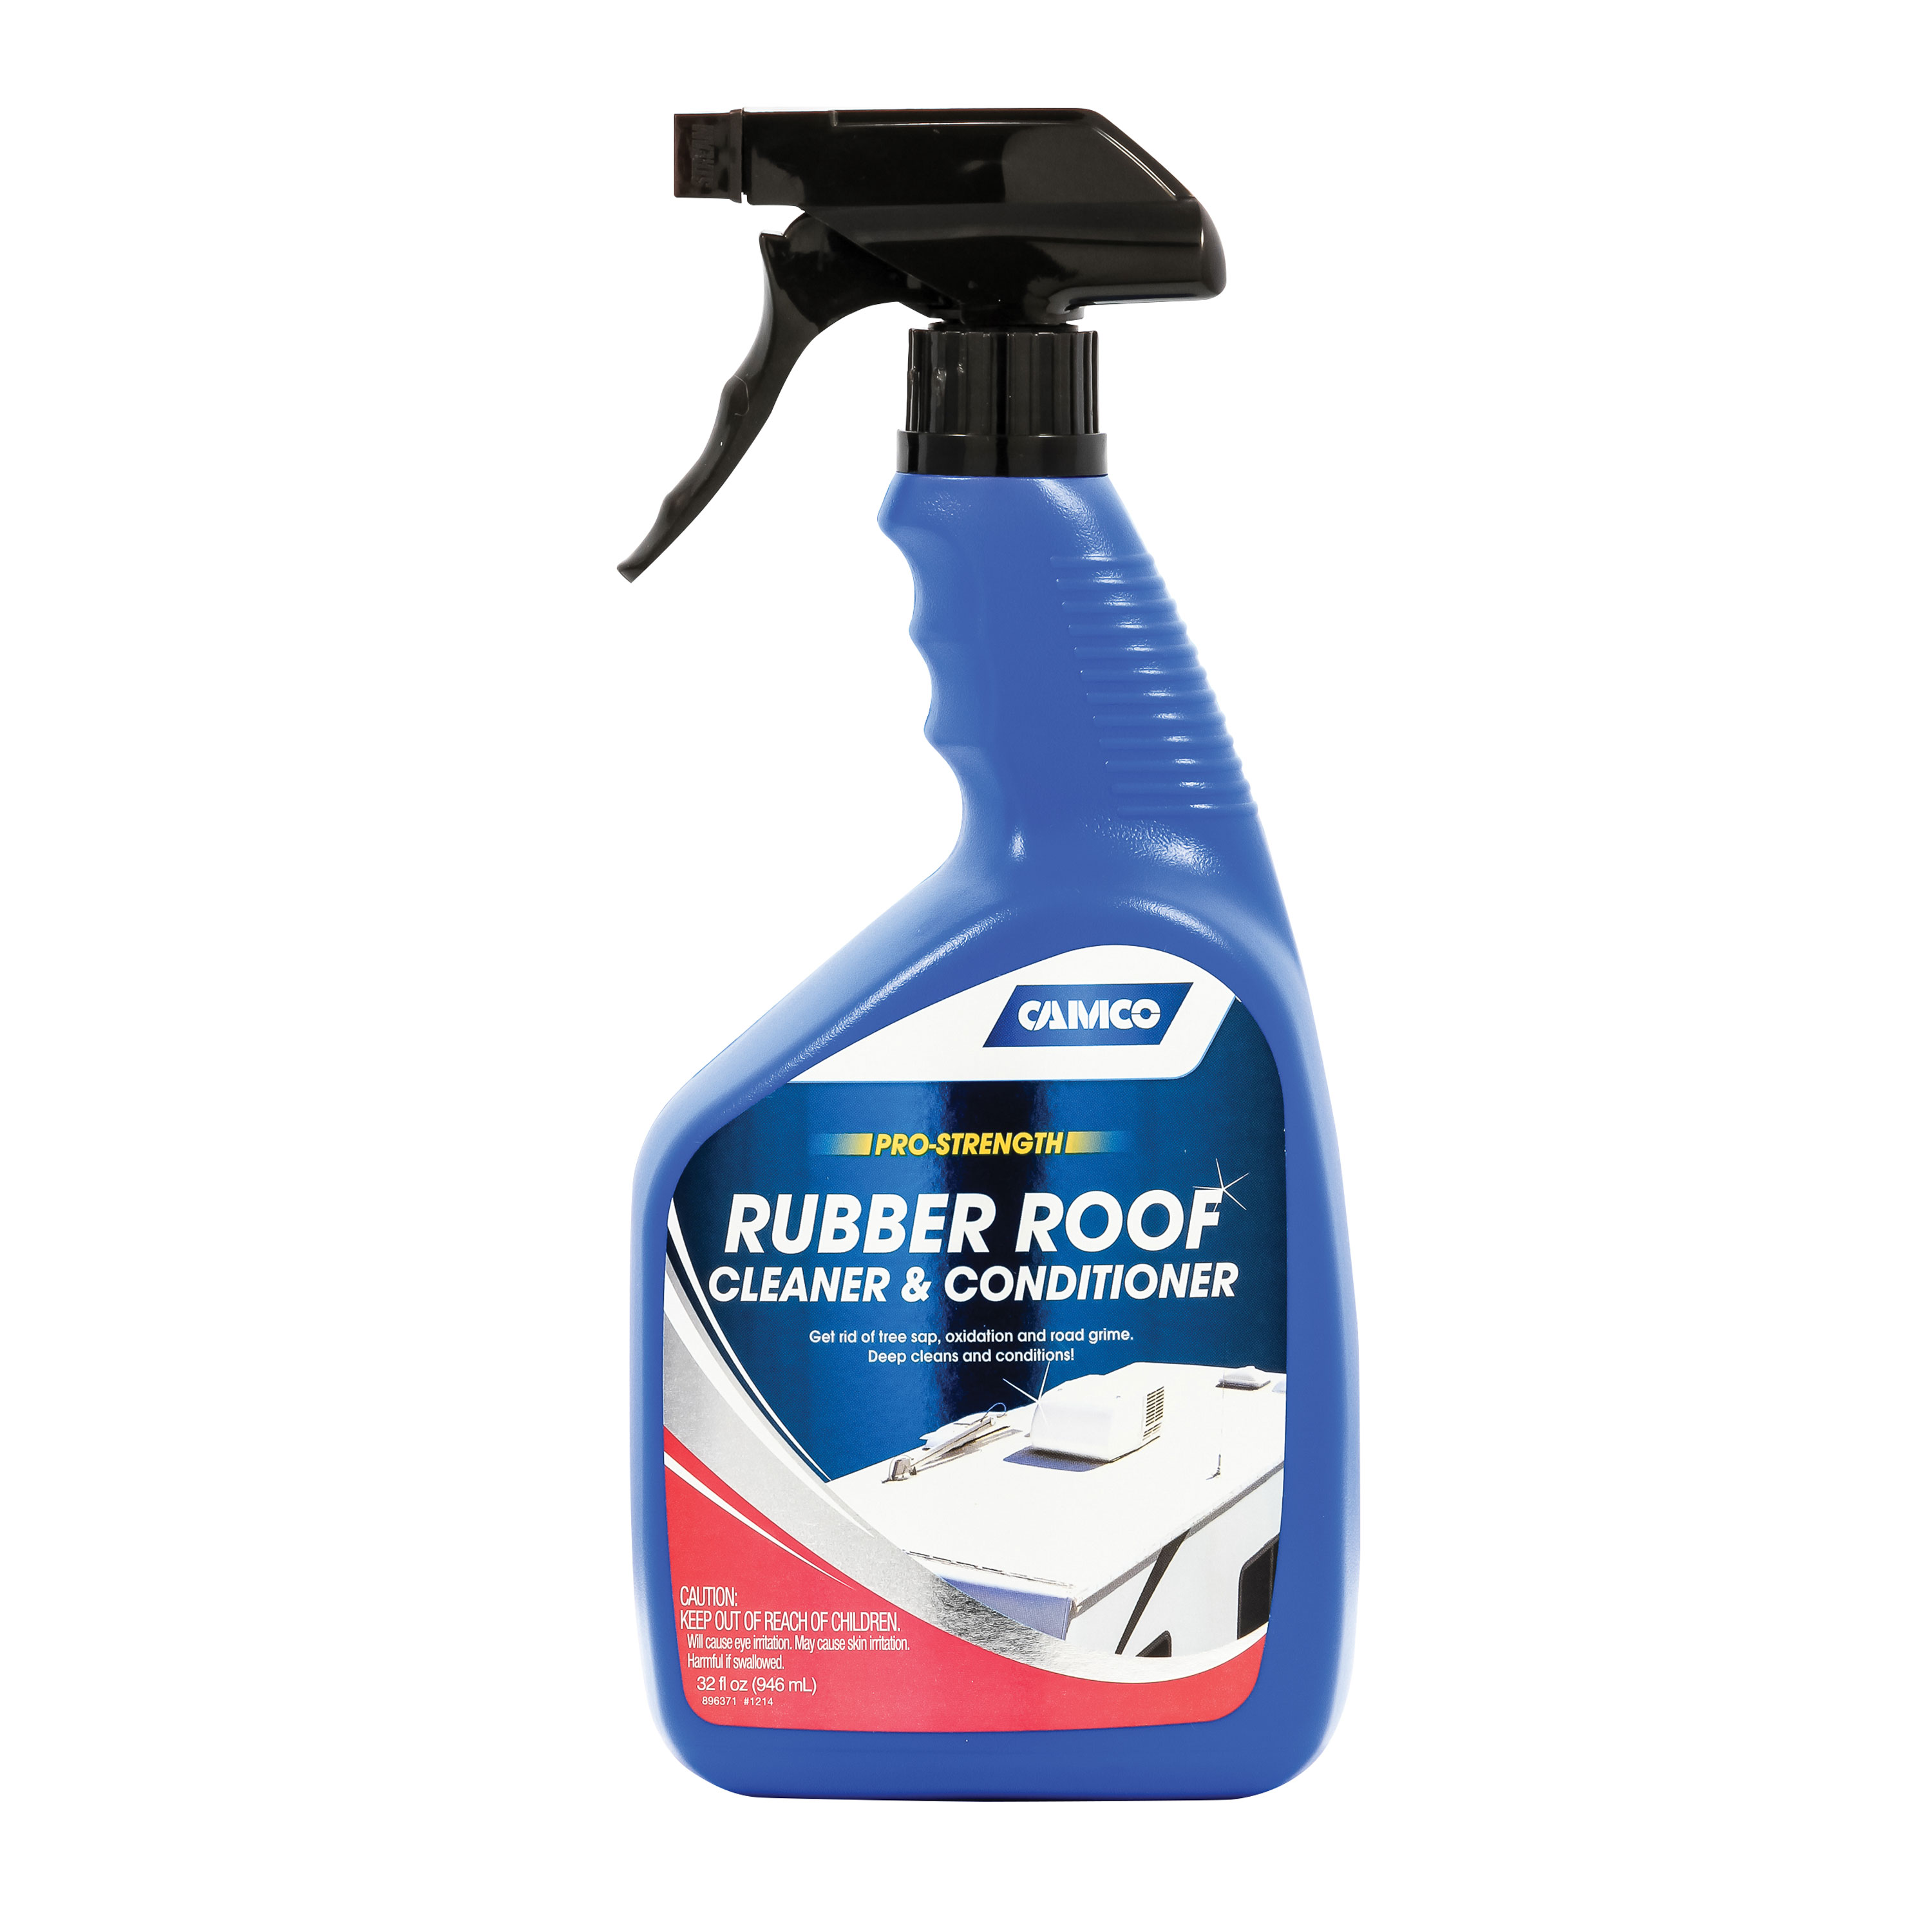 RUBBER ROOF CLEANER, PRO-STRENGTH 32OZ